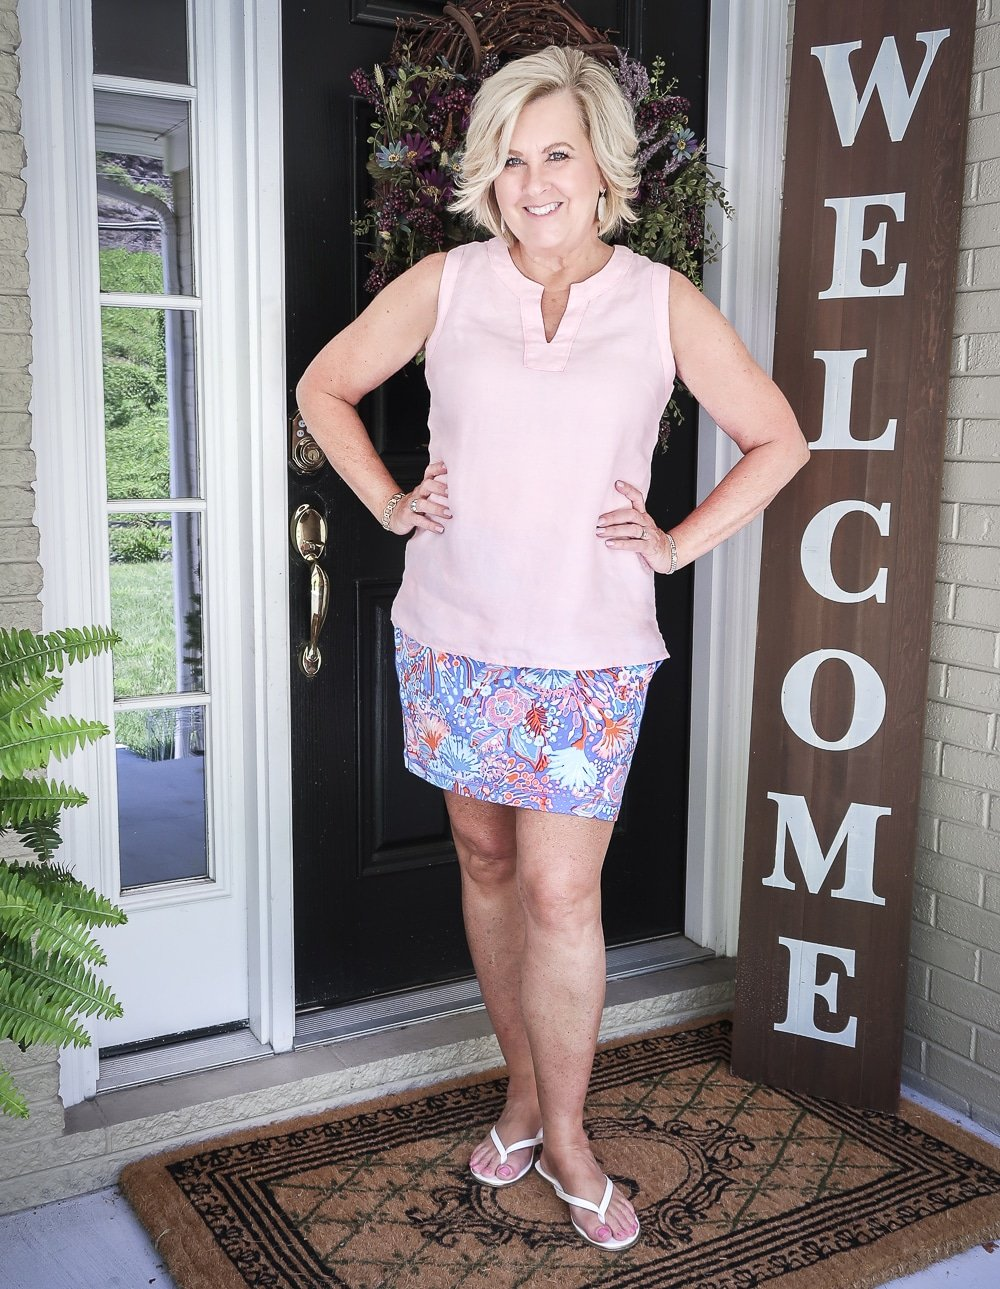 Fashion Blogger 50 Is Not Old is wearing a pale linen v neck top and a colorful yoga skort